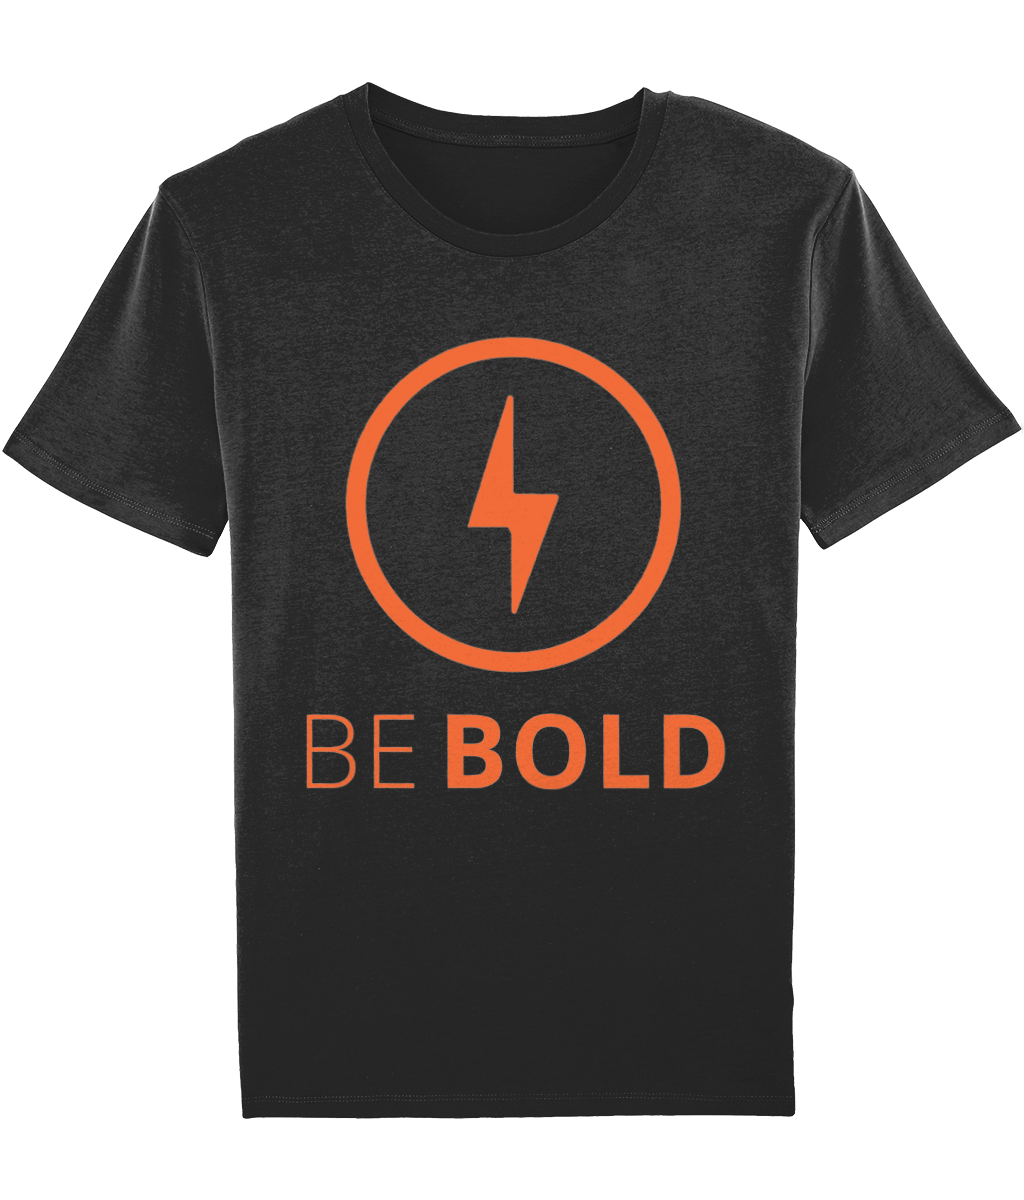 BE BOLD MEN'S T-SHIRT